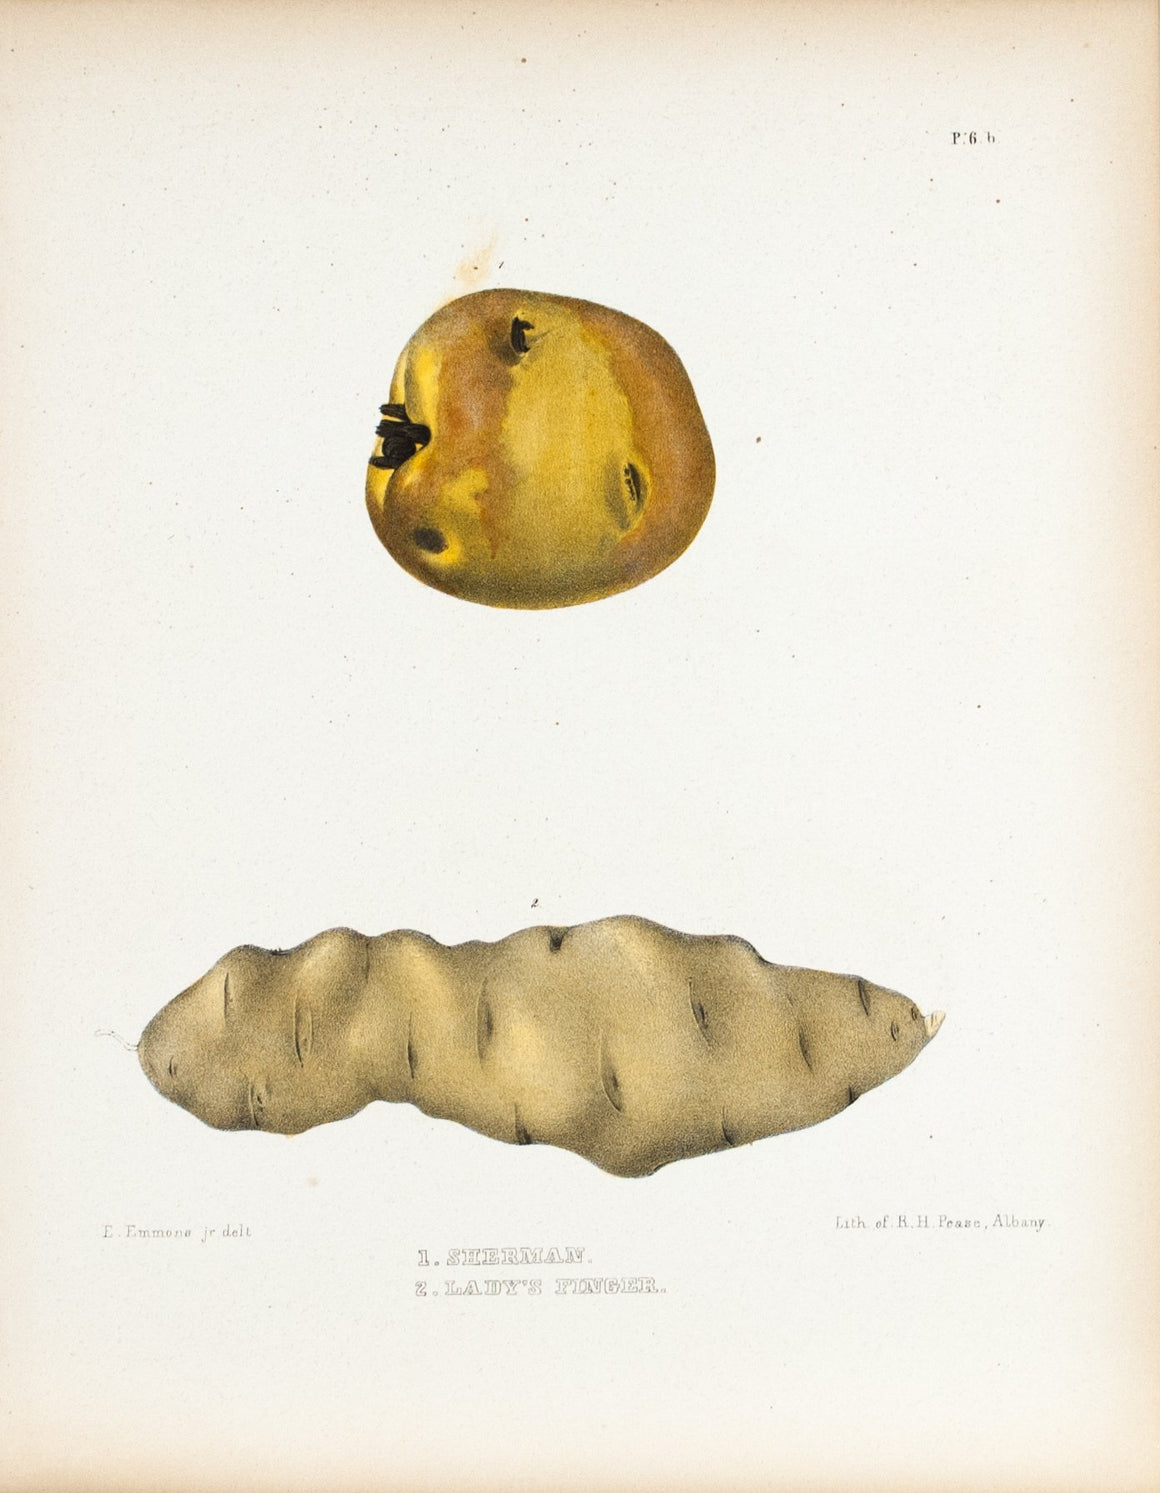 1849 Pl 6 b. Sherman & Lady's Finger - Emmons